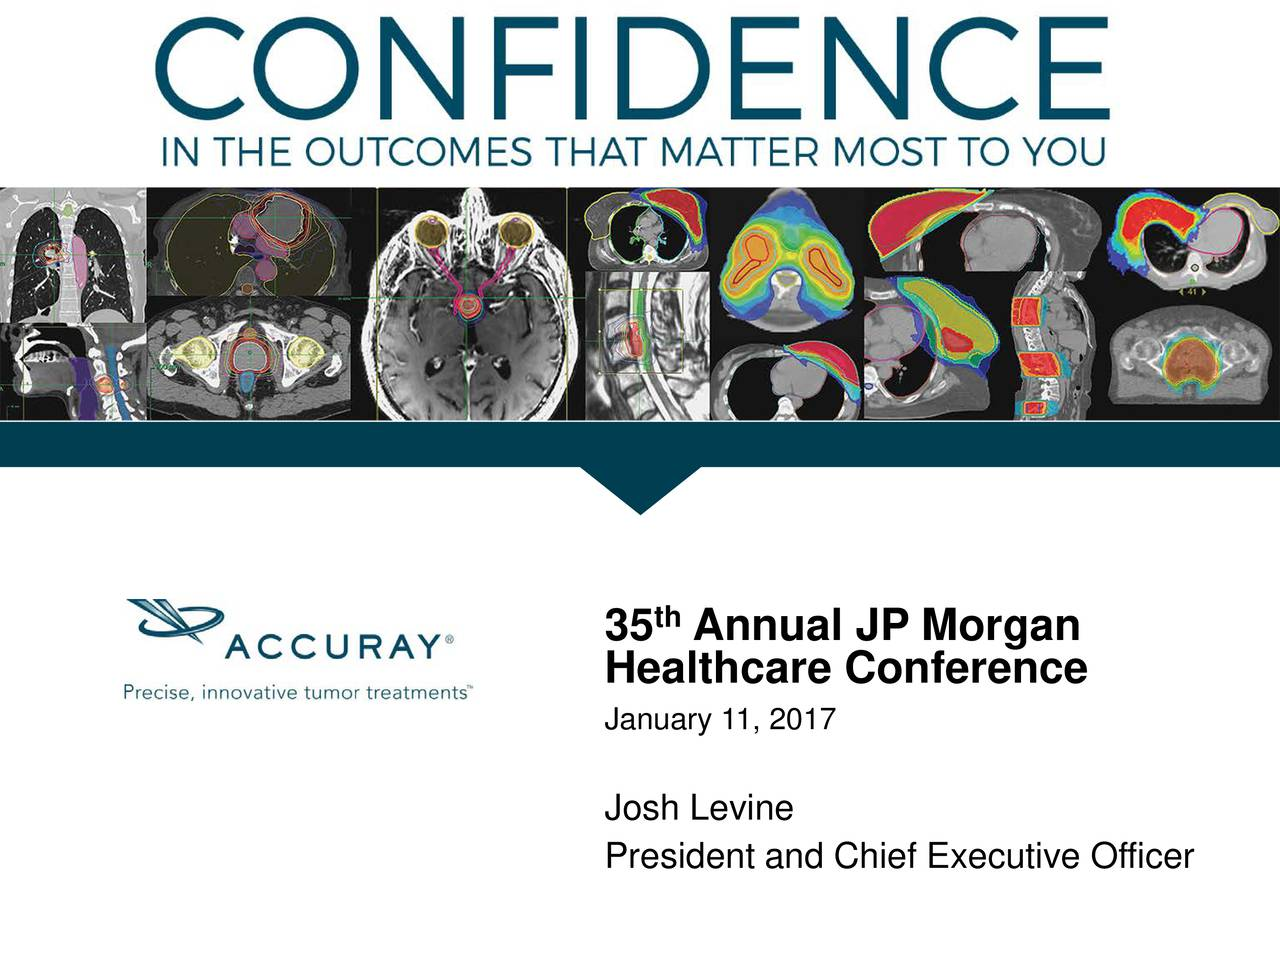 Healthcare Conference January 11, 2017 Josh Levine President and Chief Executive Officer Accuray and/or its affiliates. All rights reserved.